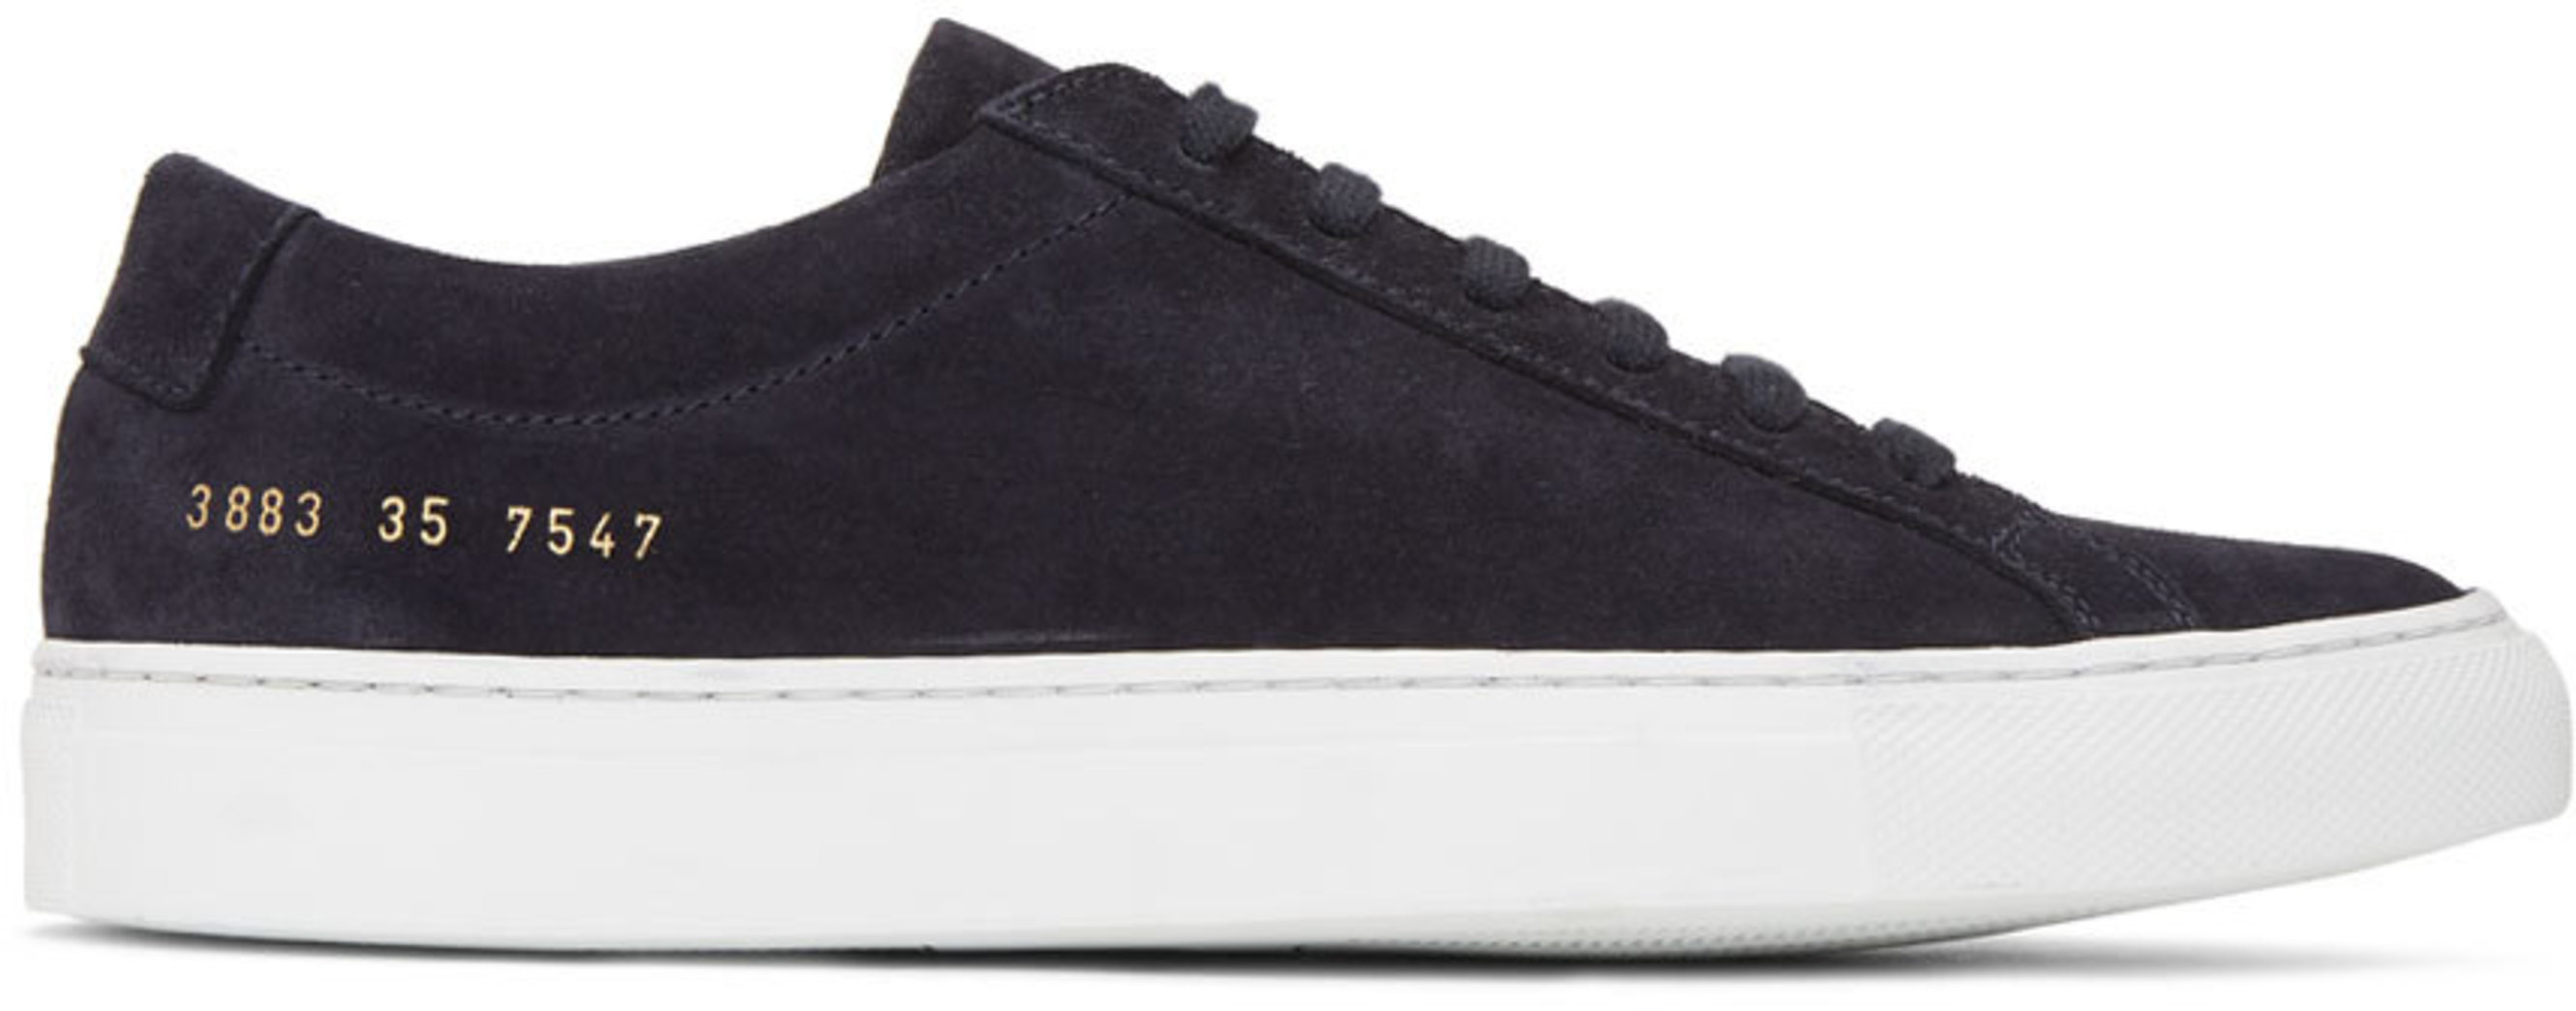 f43f0788161c Woman By Common Projects for Women FW19 Collection   SSENSE